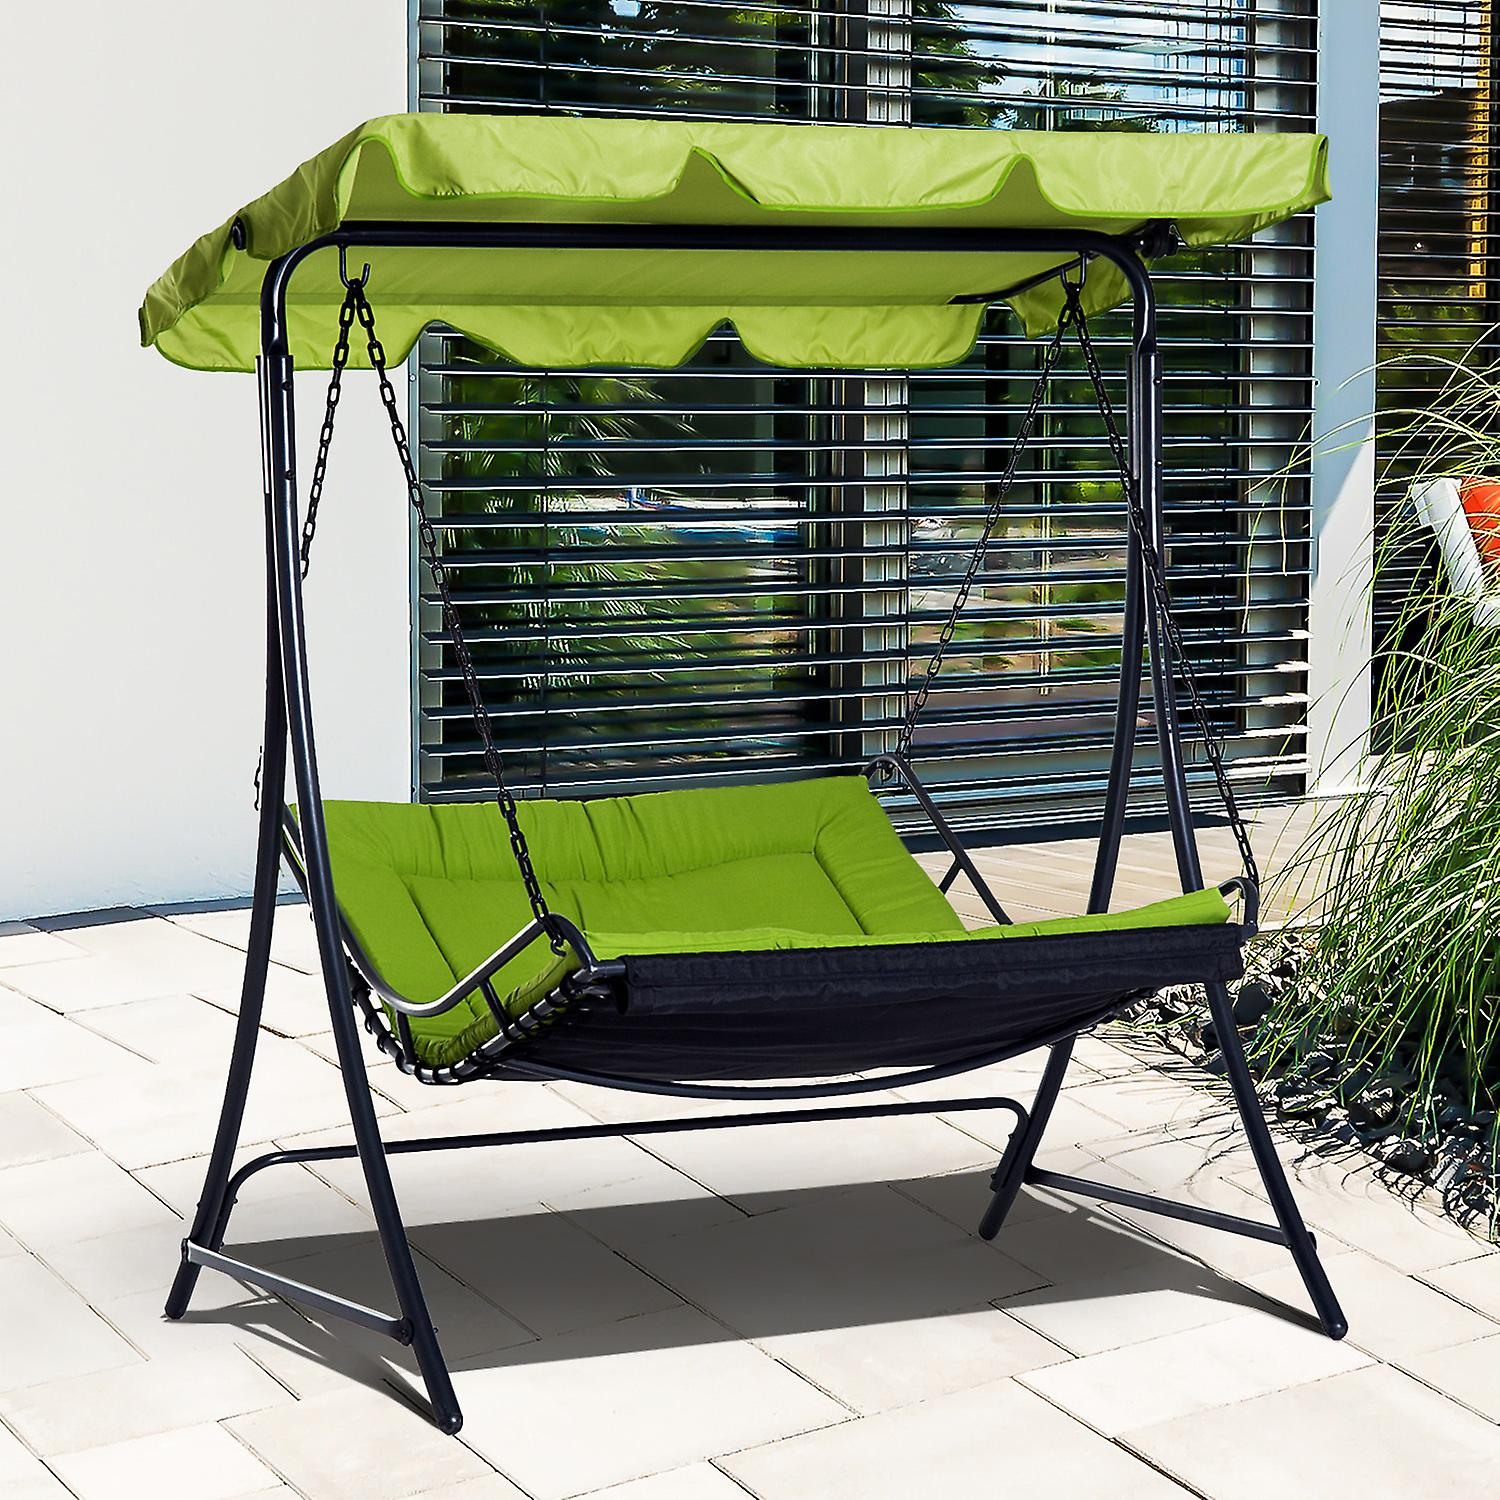 Remarkable Outsunny Swing Chair Hammock Seat Bench Outdoor Garden Adjustable Canopy Cushion Bed Green Squirreltailoven Fun Painted Chair Ideas Images Squirreltailovenorg